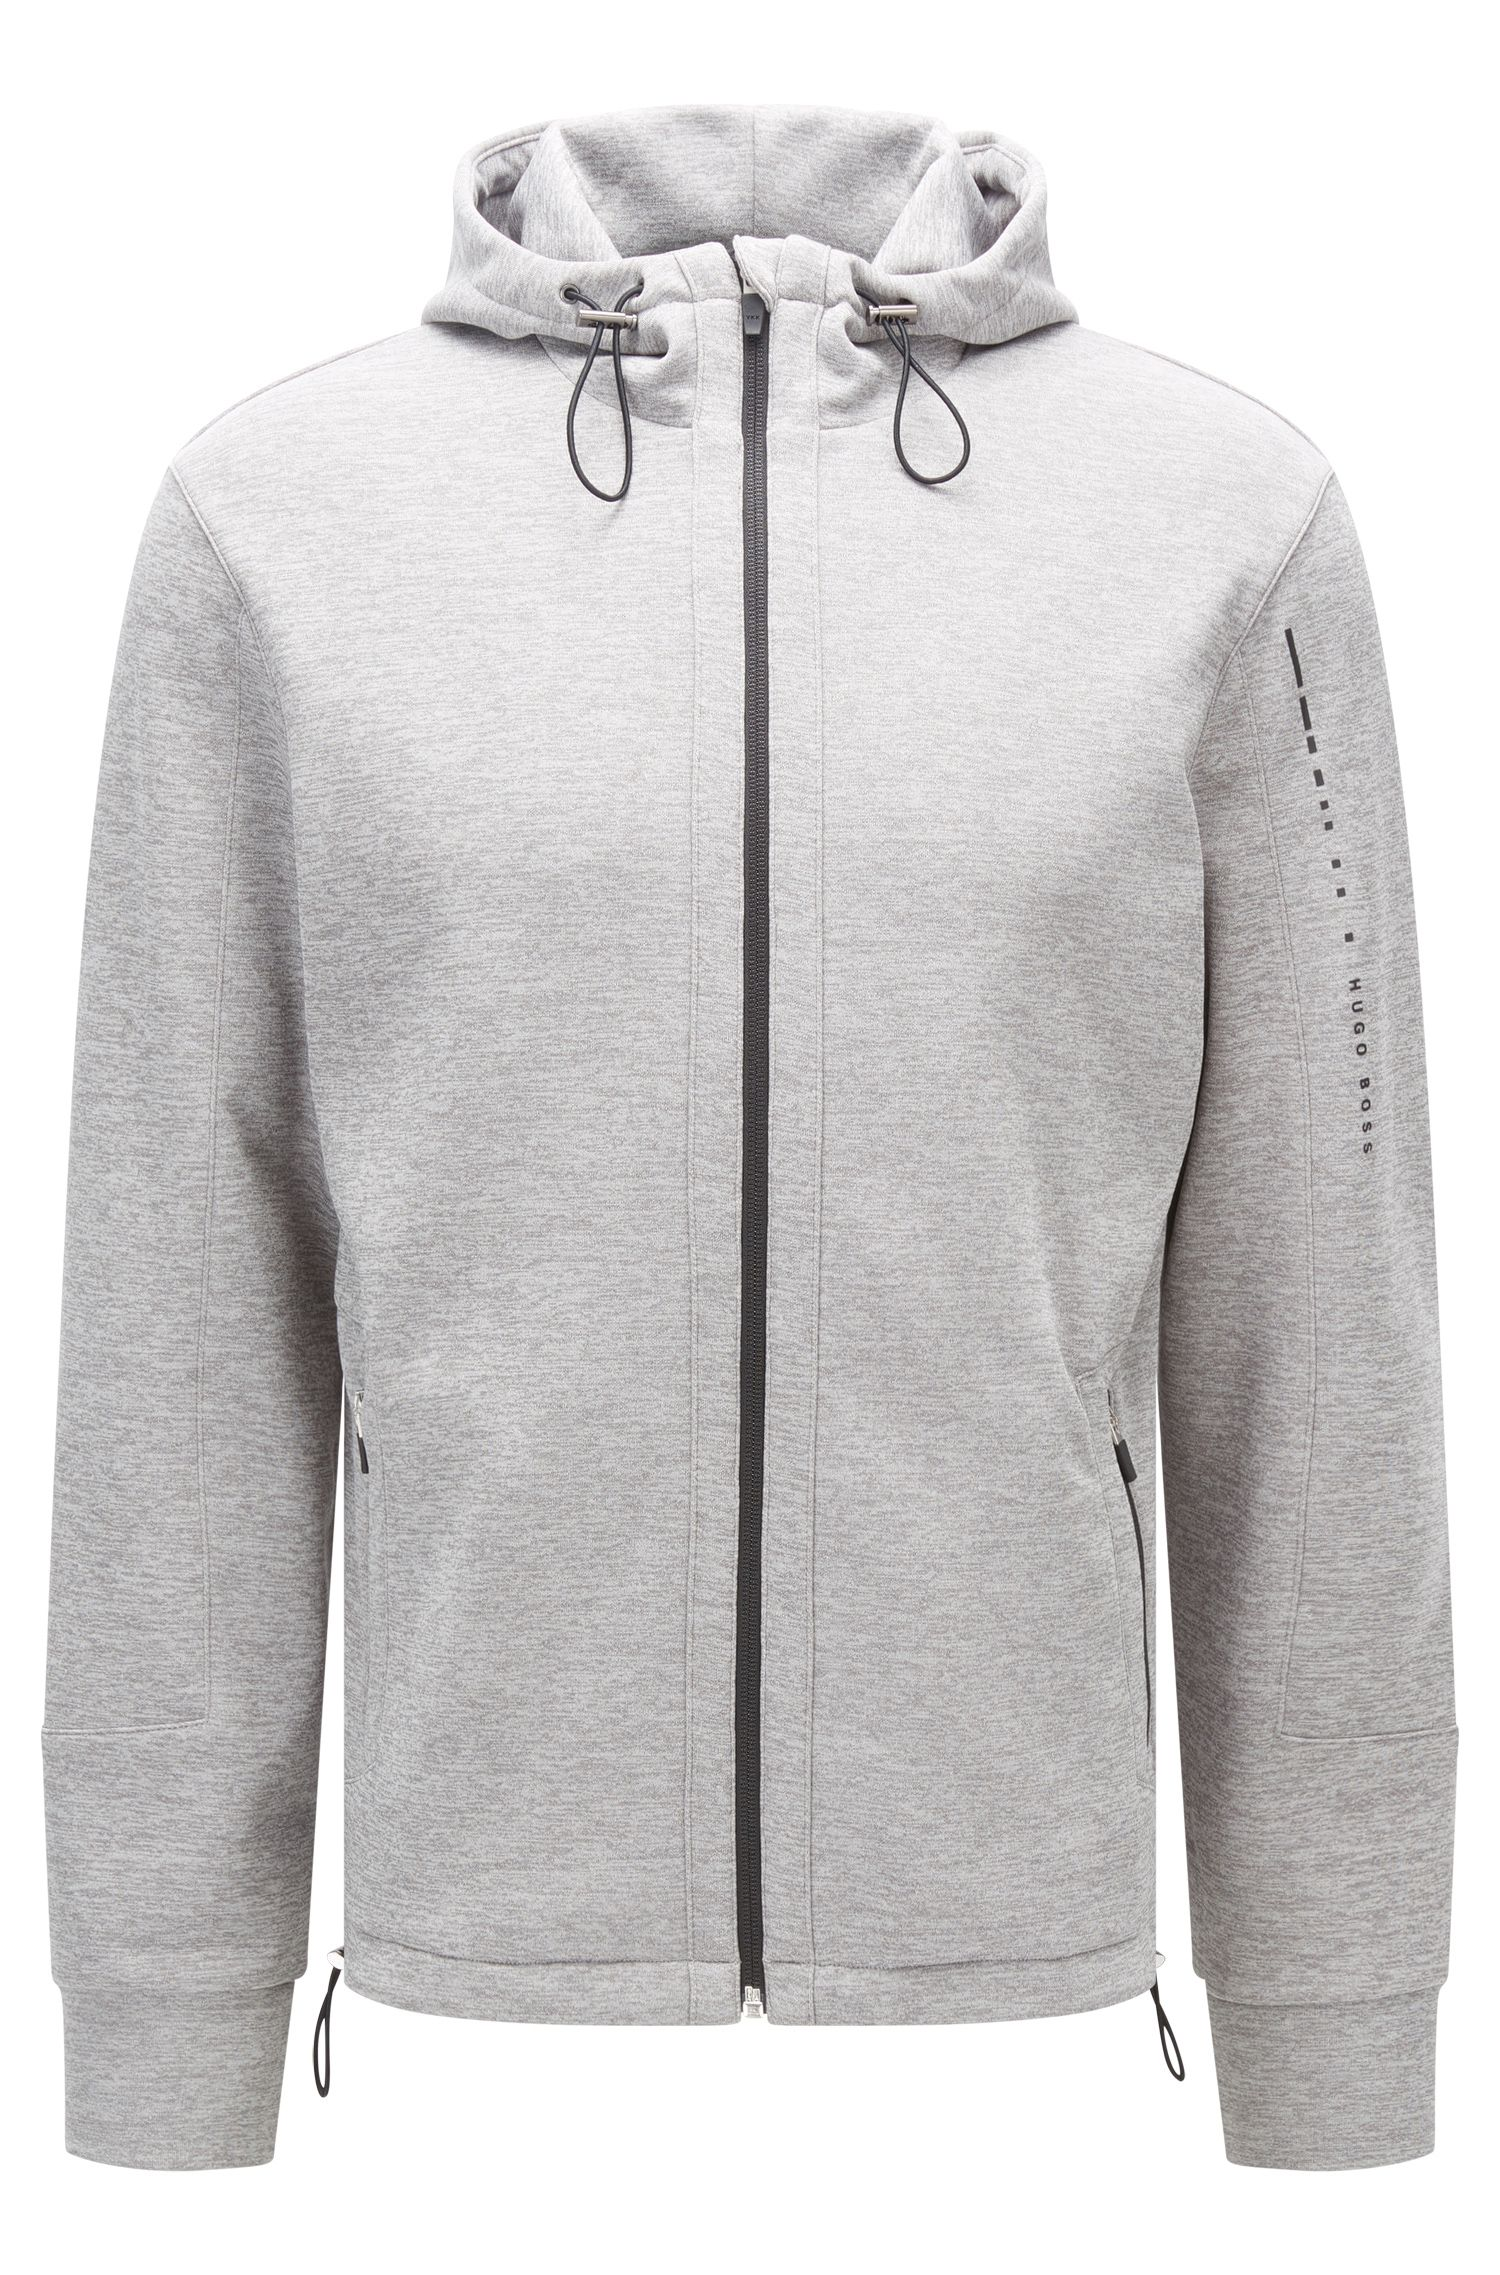 Regular-fit hooded jacket in technical fabric